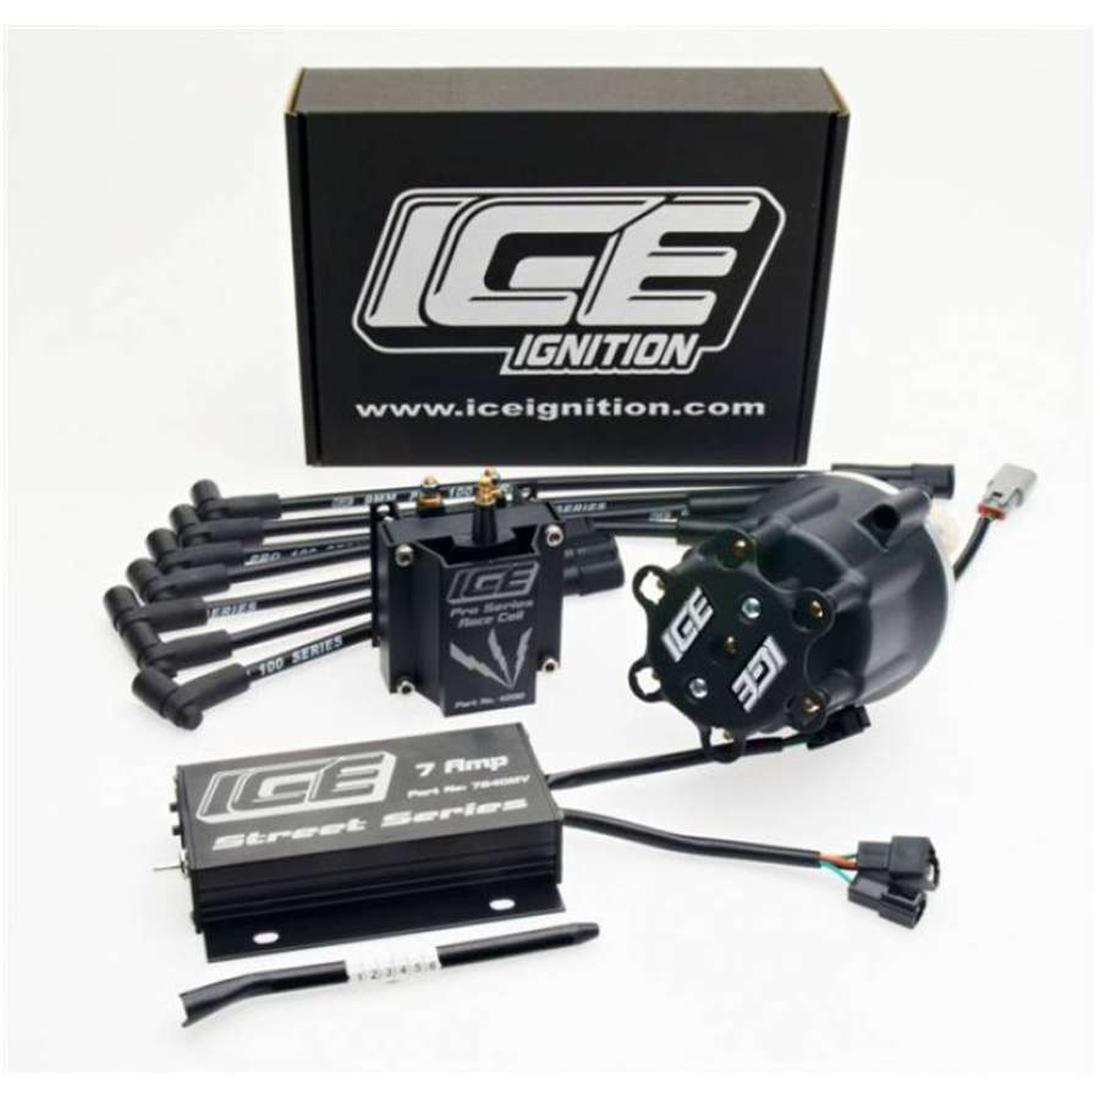 Ice Ignition 7 AMP Digital Street Ignition Kit Ford Windsor 289 302 V8 Engine image